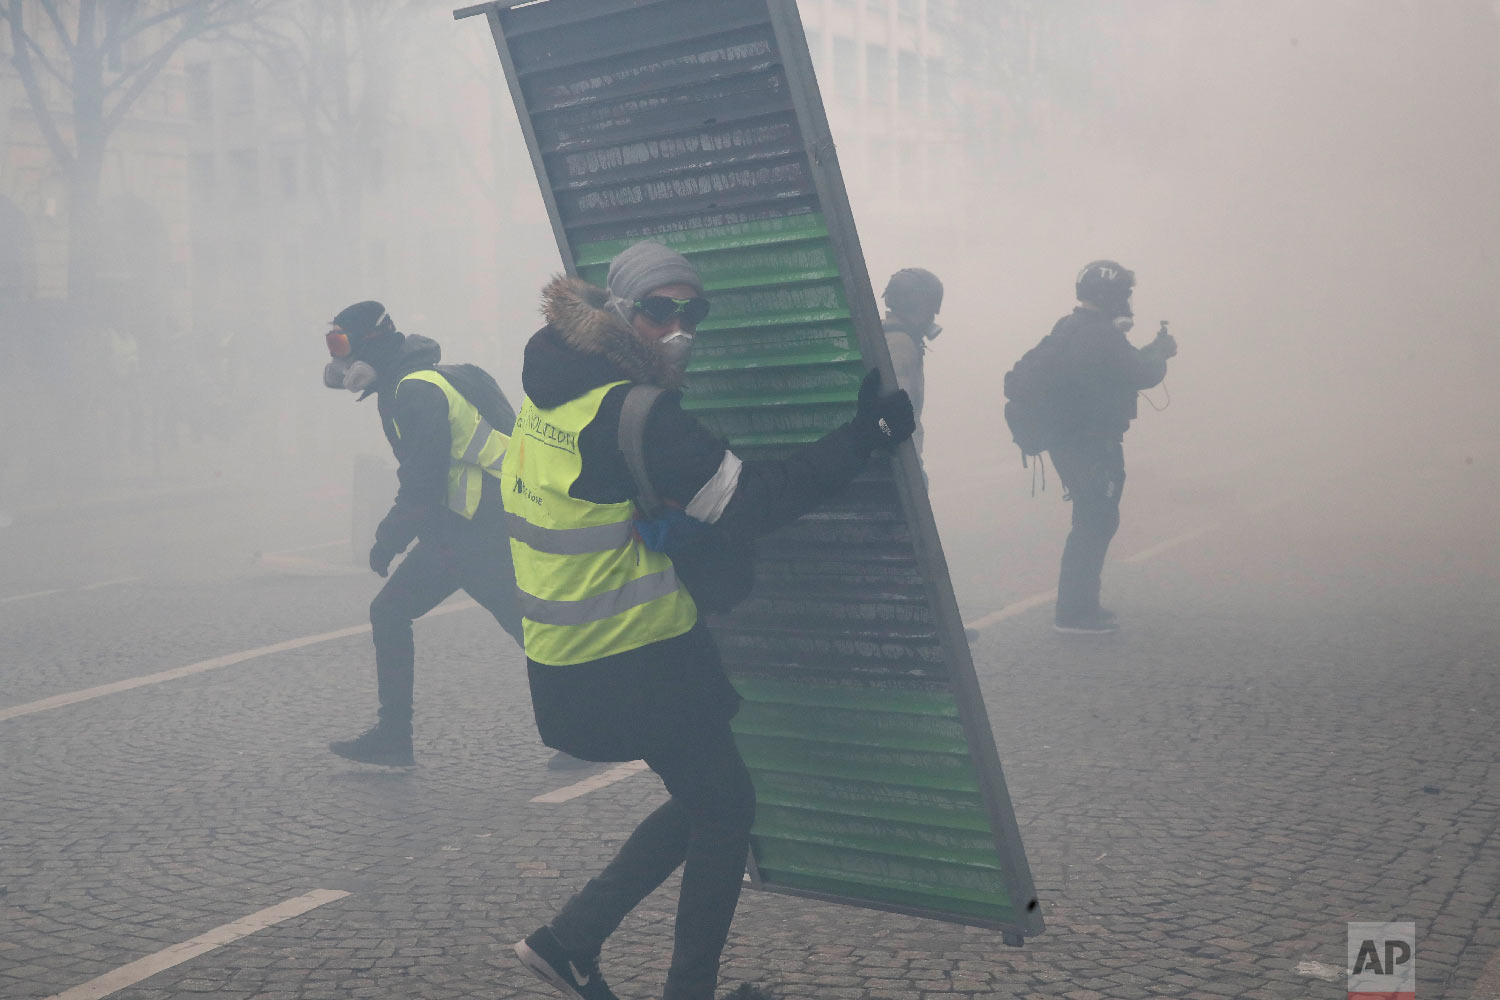 Protesters set up barricades through tear gas during a yellow vests demonstration, March 16, 2019. (AP Photo/Christophe Ena)